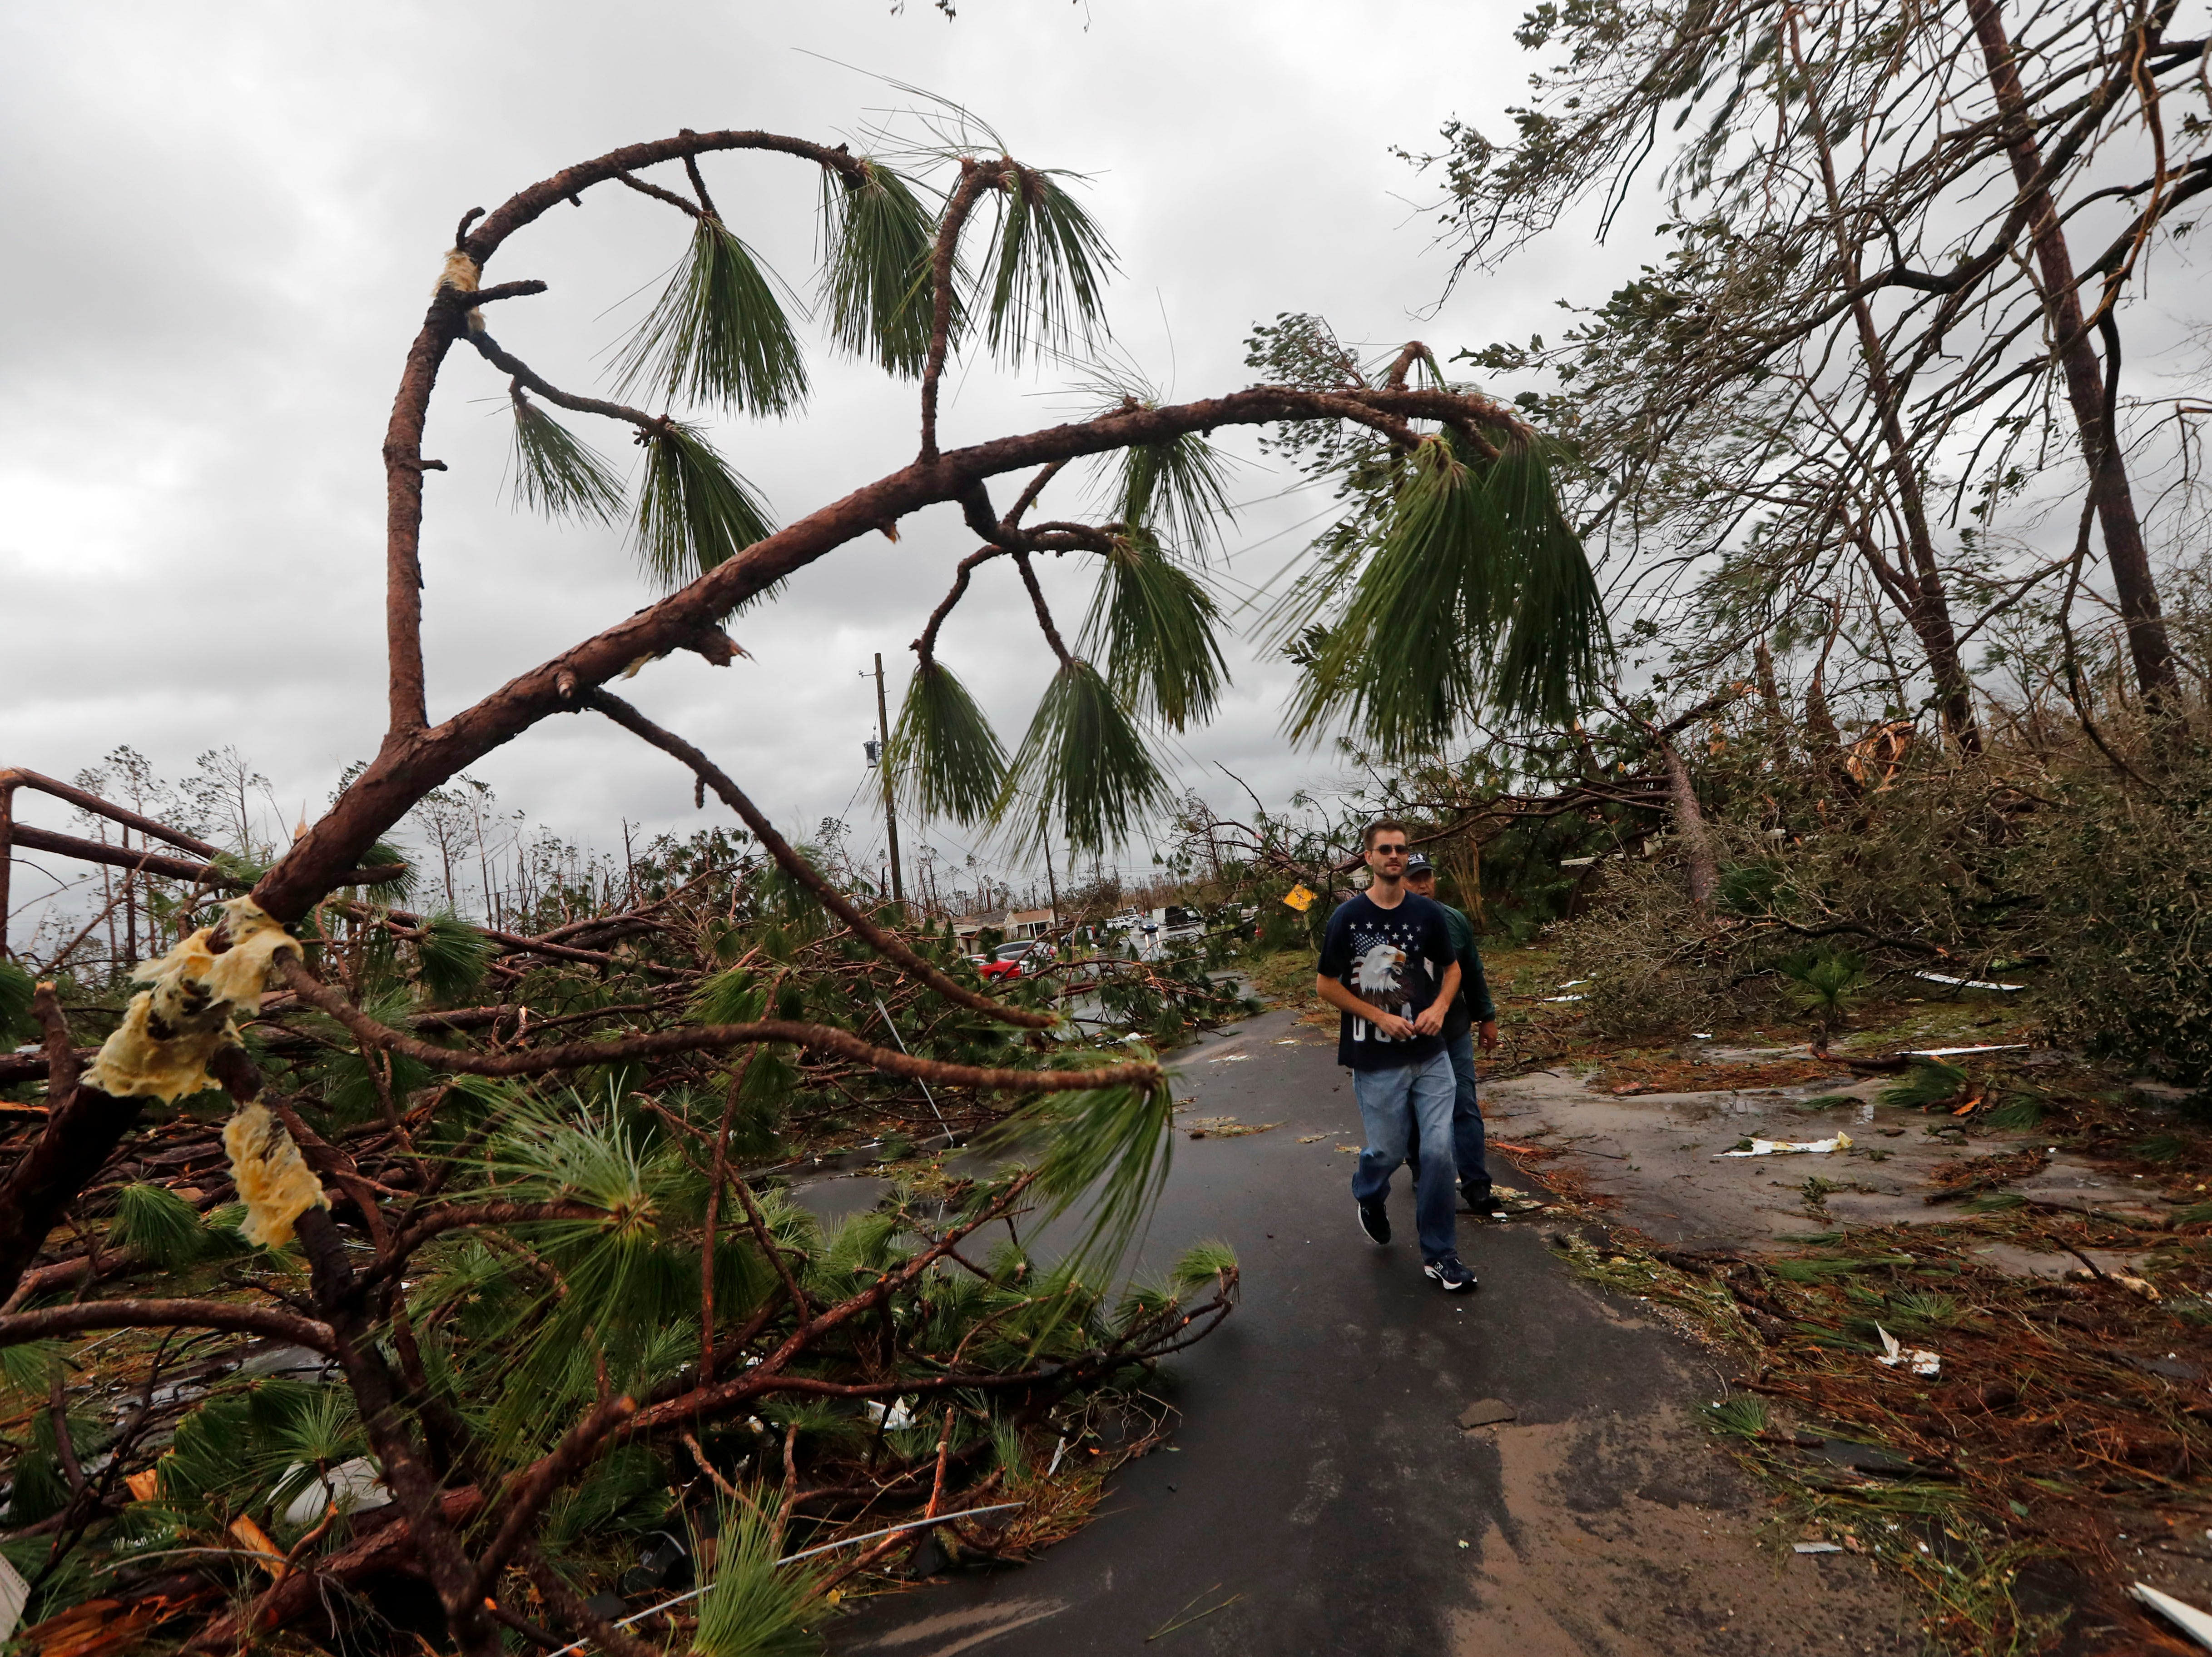 People walk through downed trees in a heavily damaged neighborhood in the aftermath of Hurricane Michael in Panama City, Fla., Wednesday, Oct. 10, 2018. Supercharged by abnormally warm waters in the Gulf of Mexico, Hurricane Michael slammed into the Florida Panhandle with terrifying winds of 155 mph Wednesday, splintering homes and submerging neighborhoods.